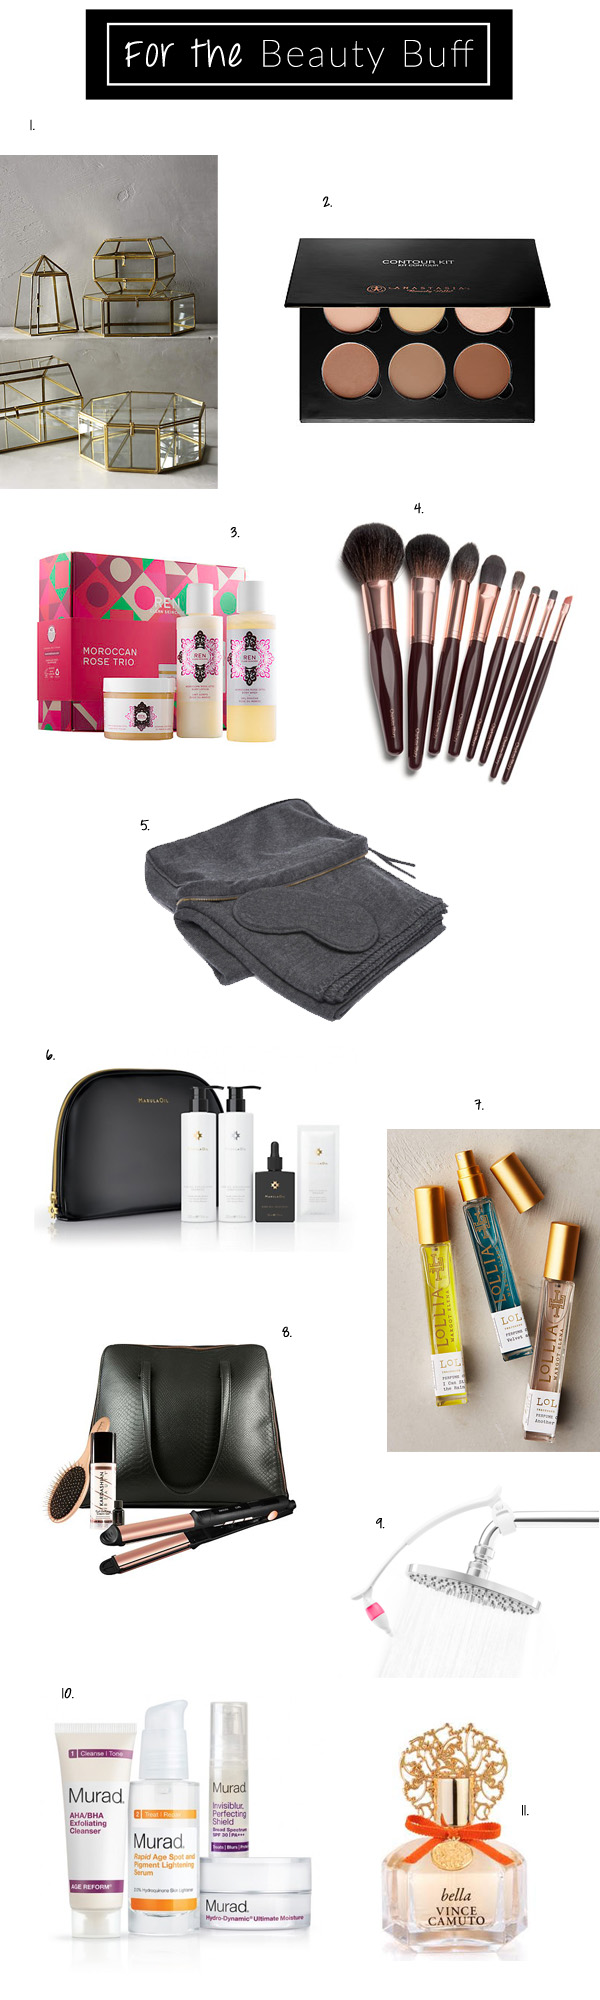 holiday_gifts_beauty_ideas